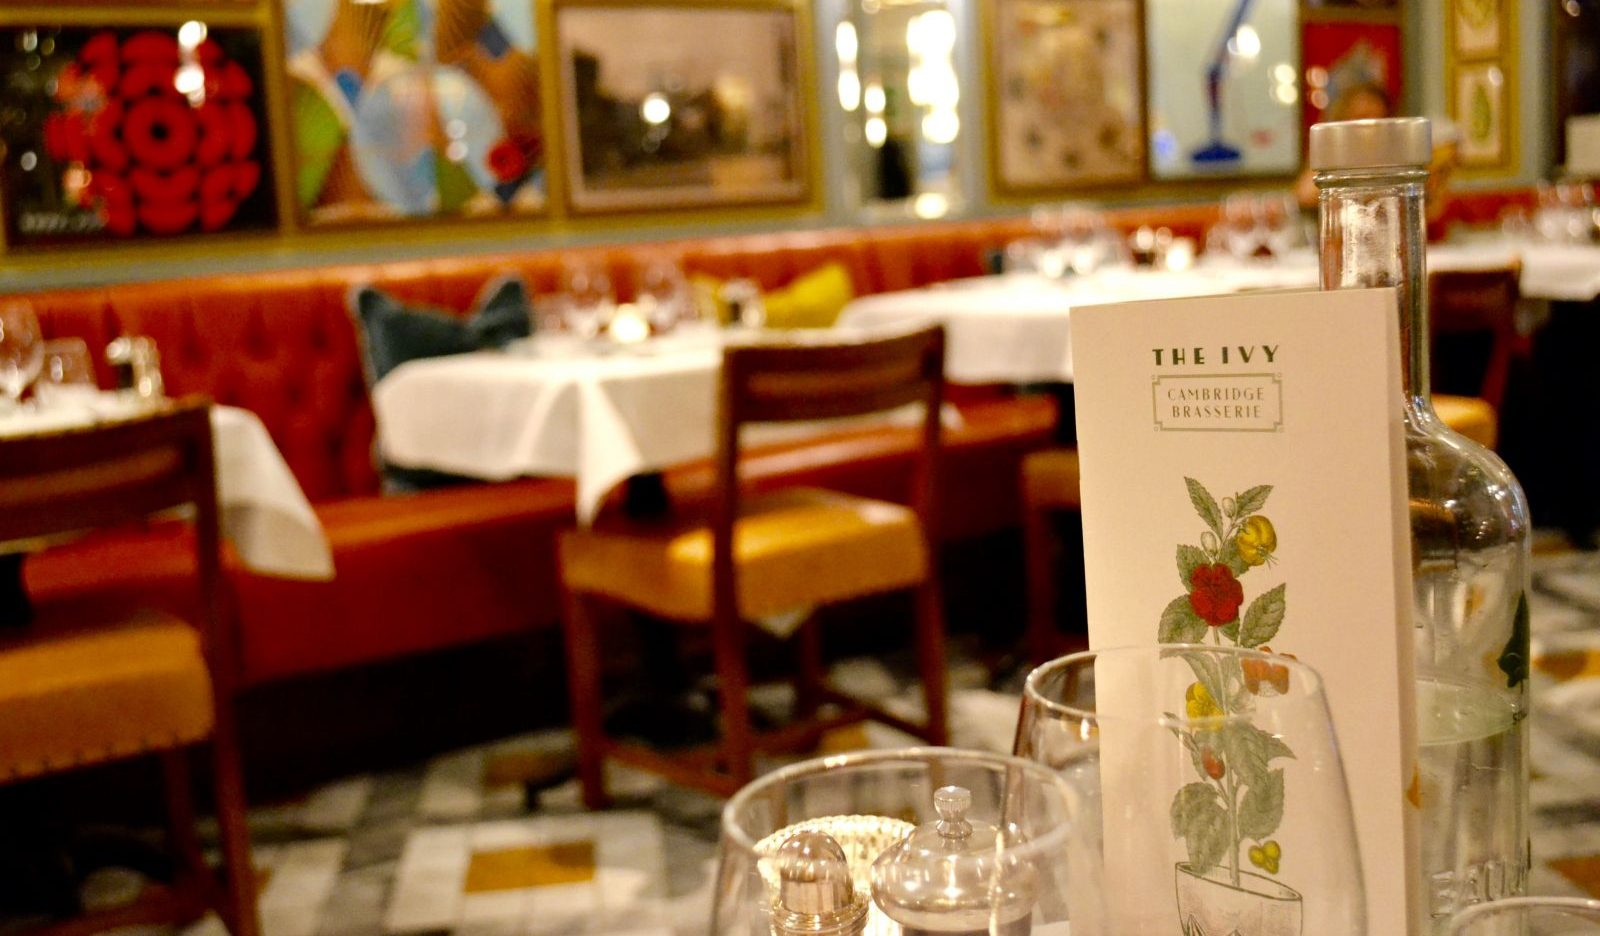 Three Delicious Courses at The Ivy Cambridge Brasserie*